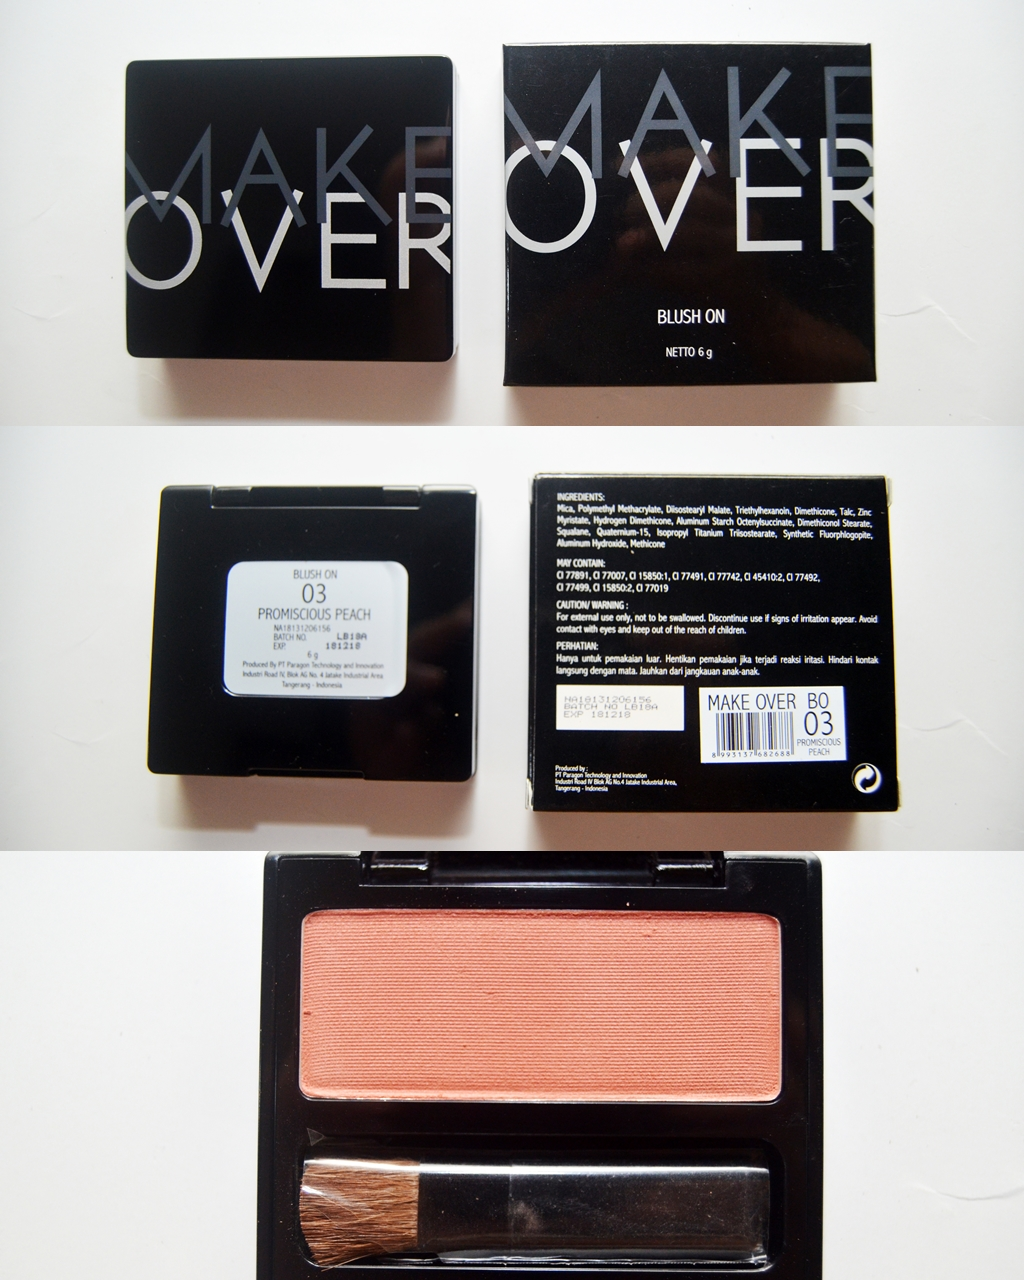 Make Over Blush On Single 03 Promiscious Peach Daftar Update Source Make Over